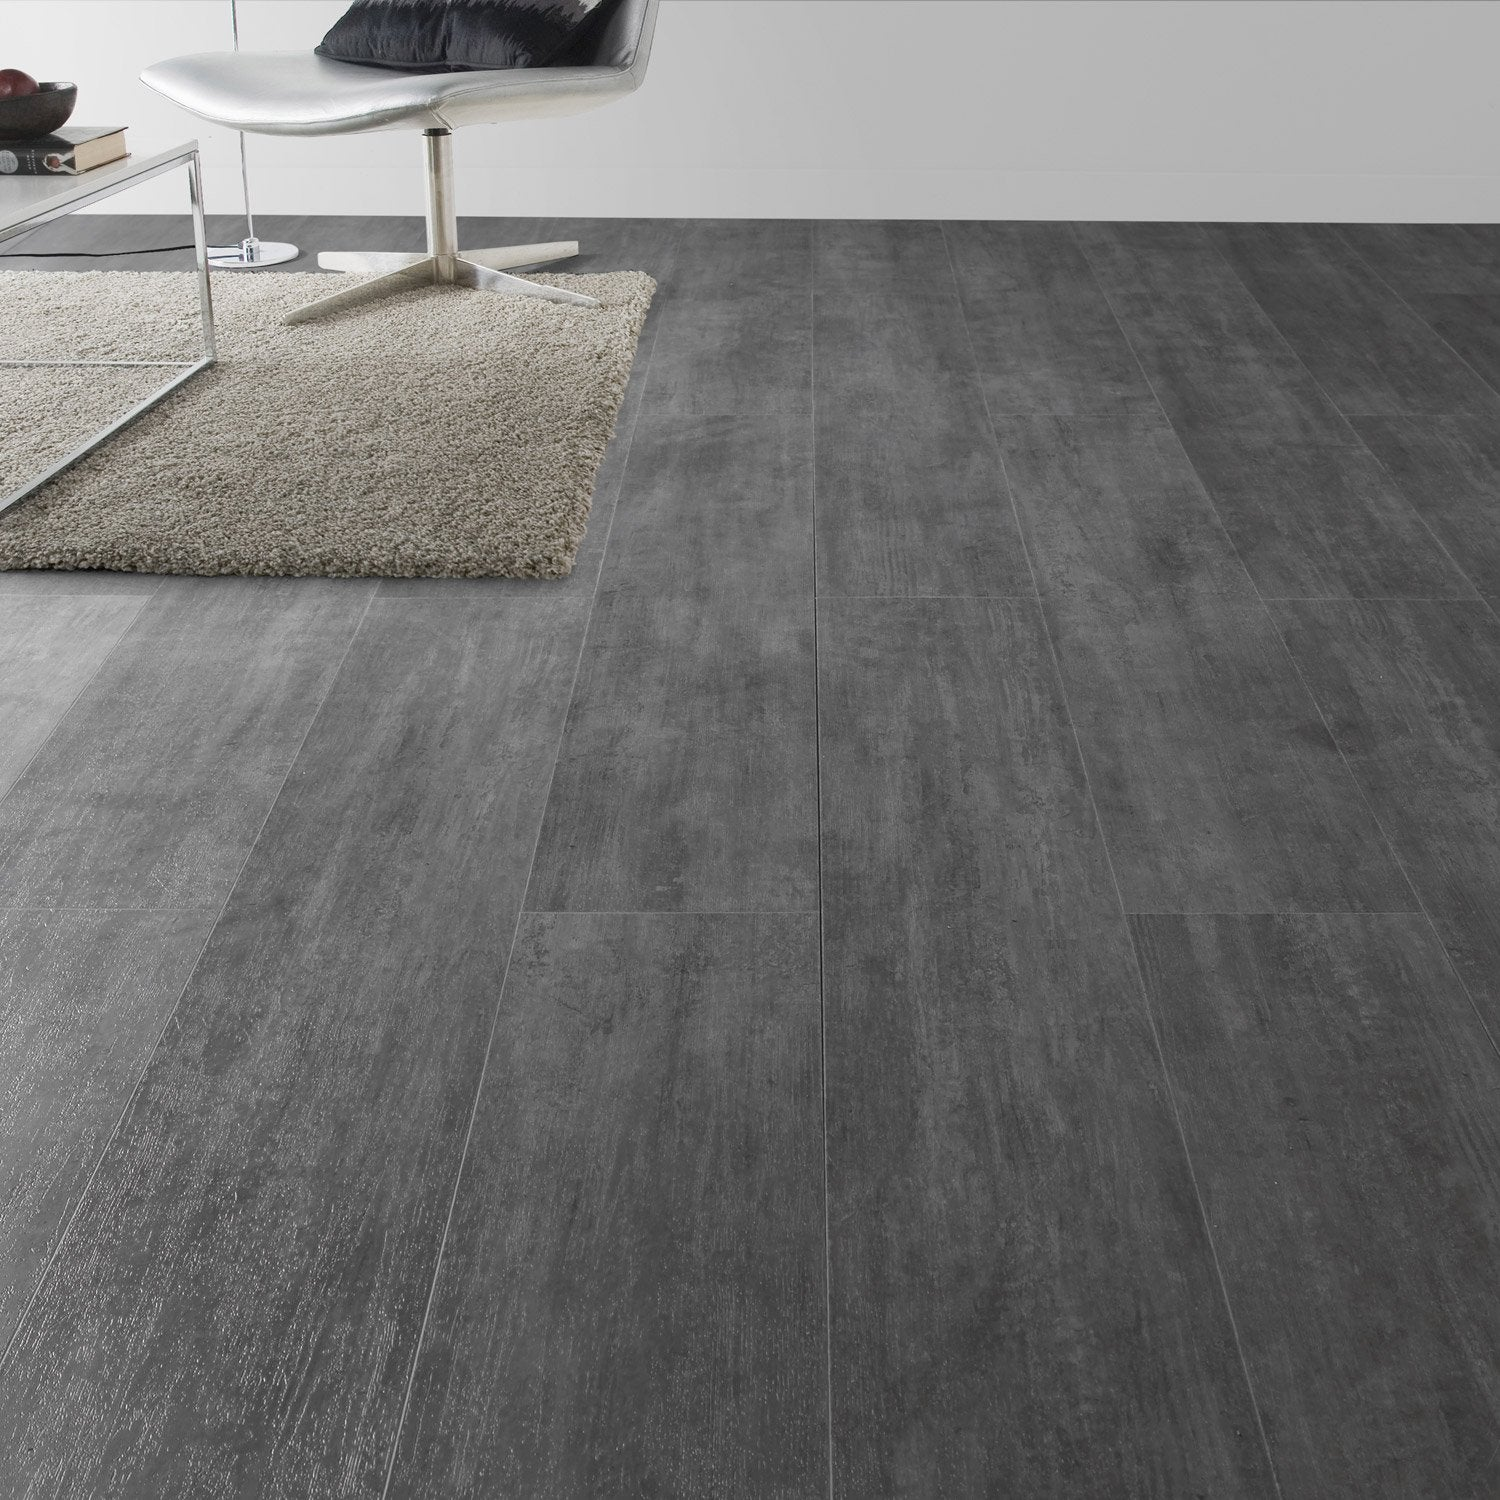 Lame pvc clipsable gris nolita grey senso lock gerflor for Lame pvc pour salle de bain